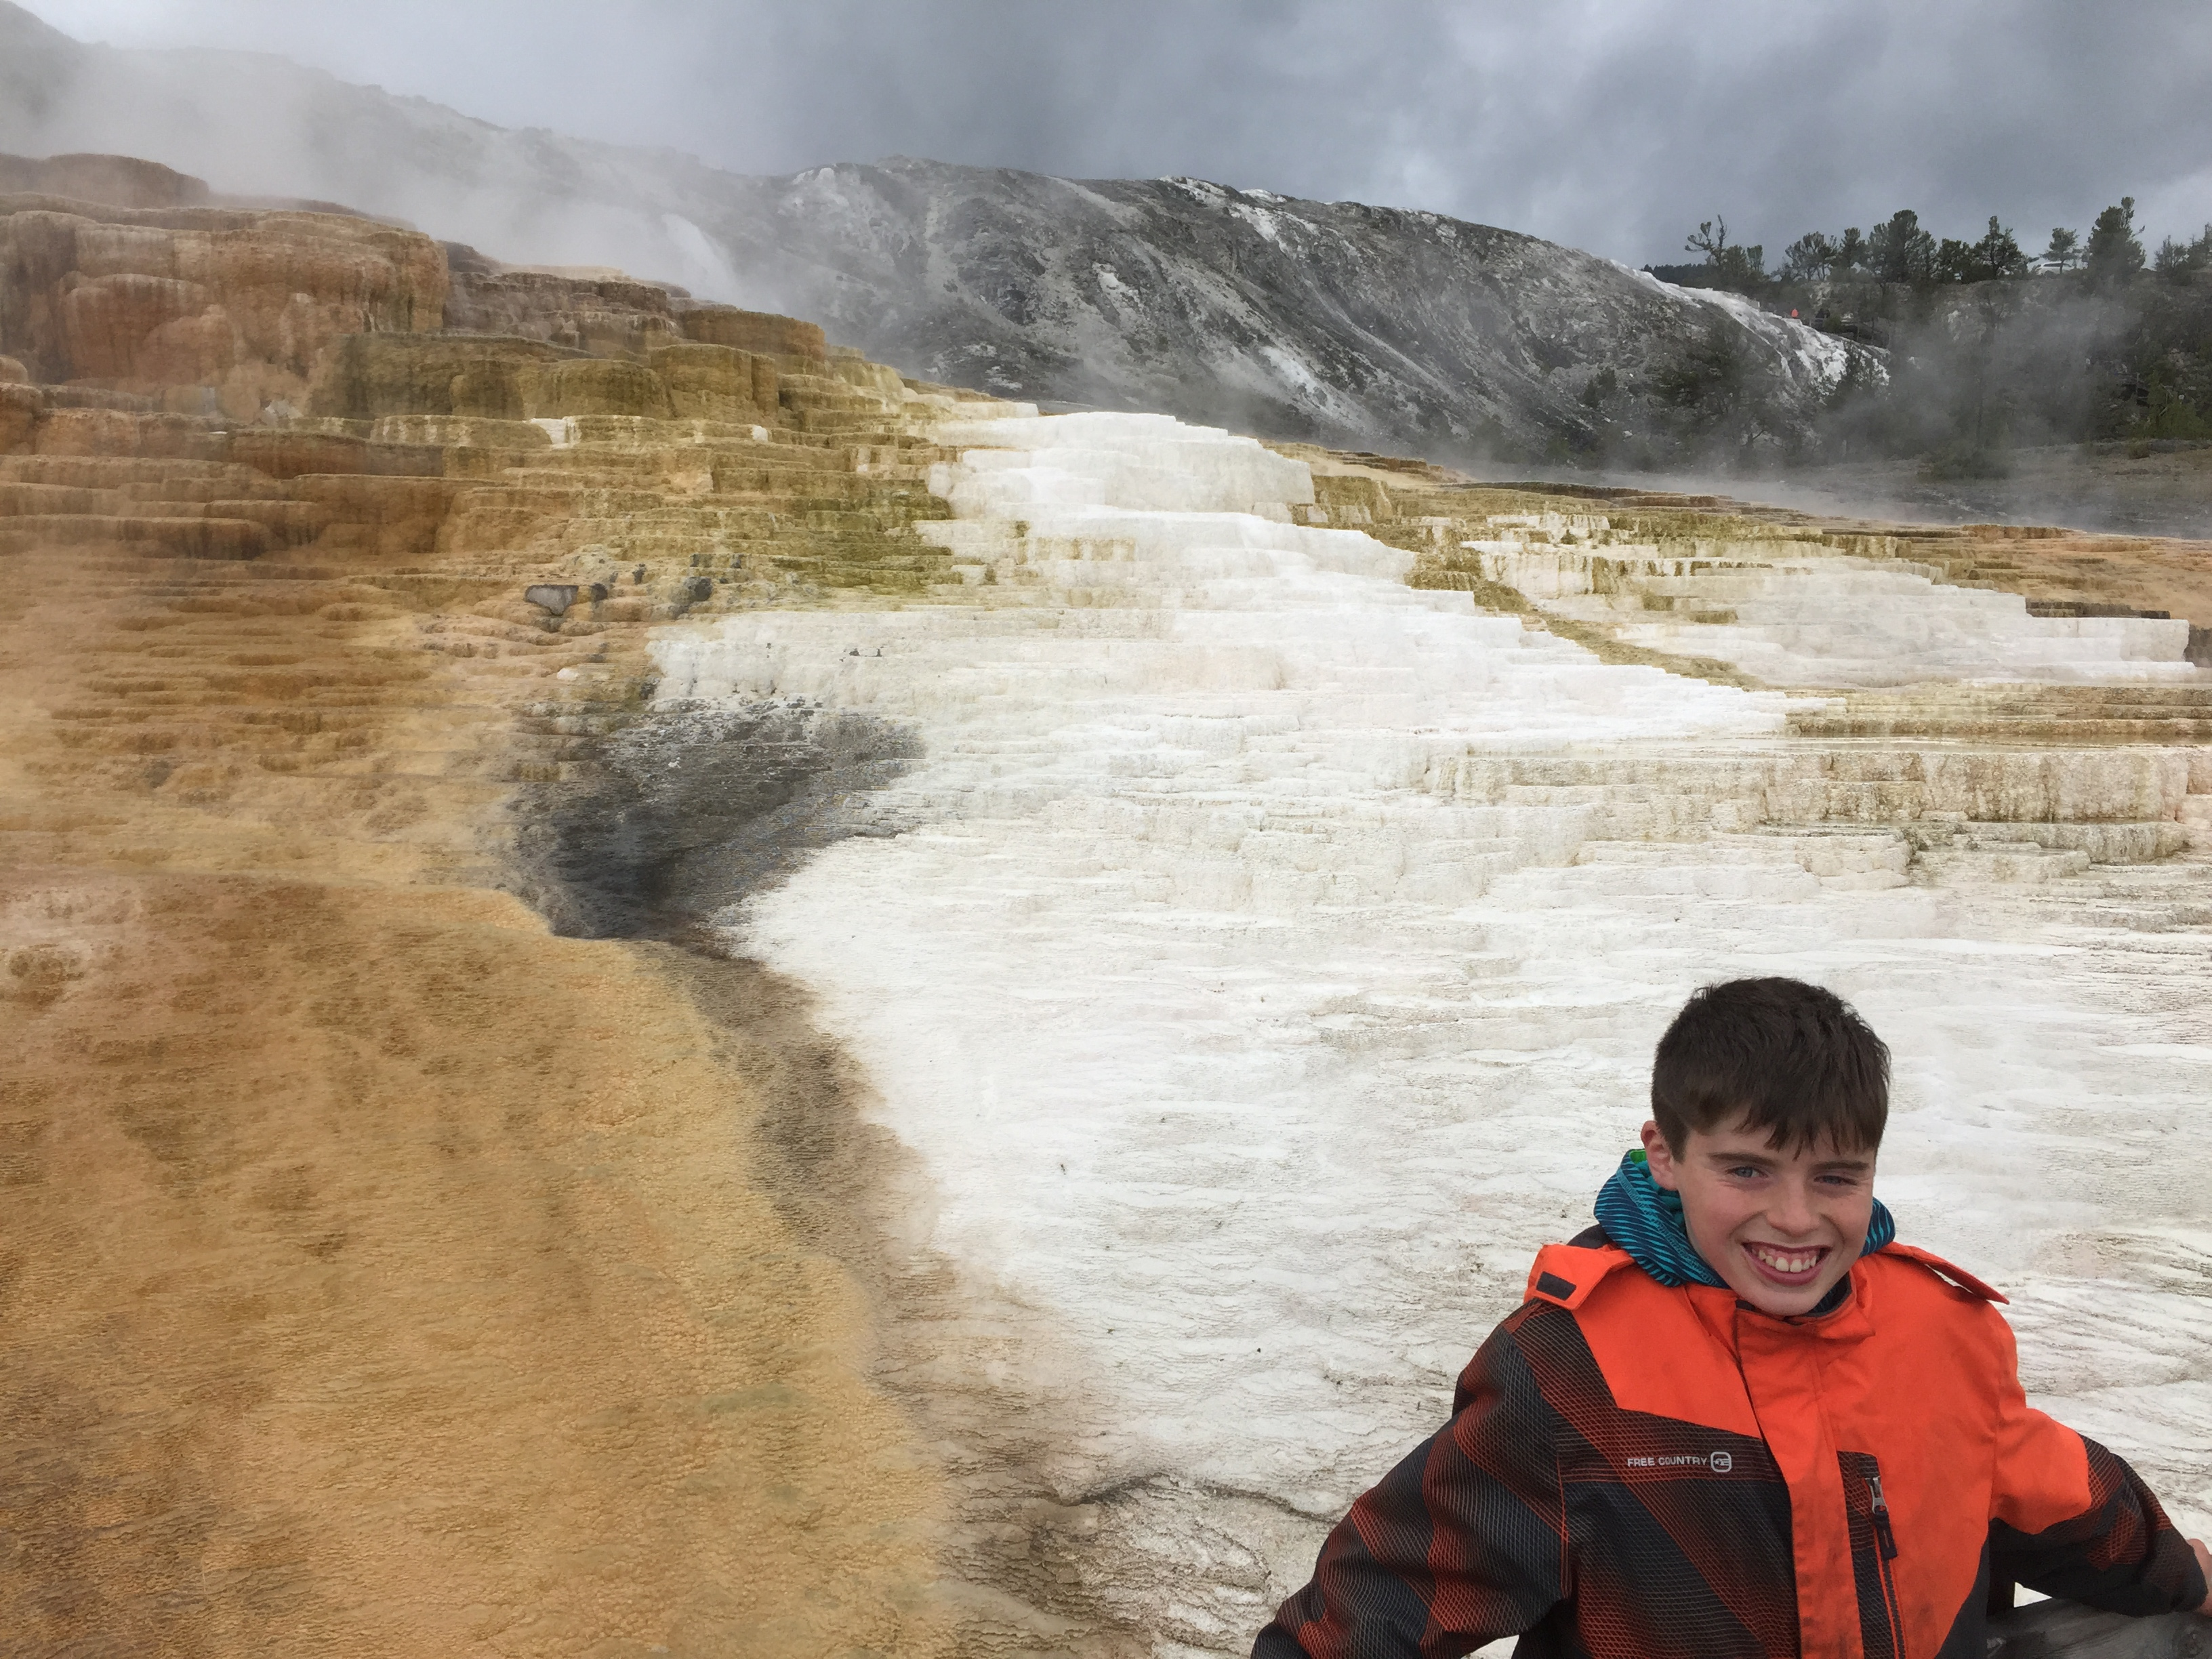 Student at Yellowstone National Park